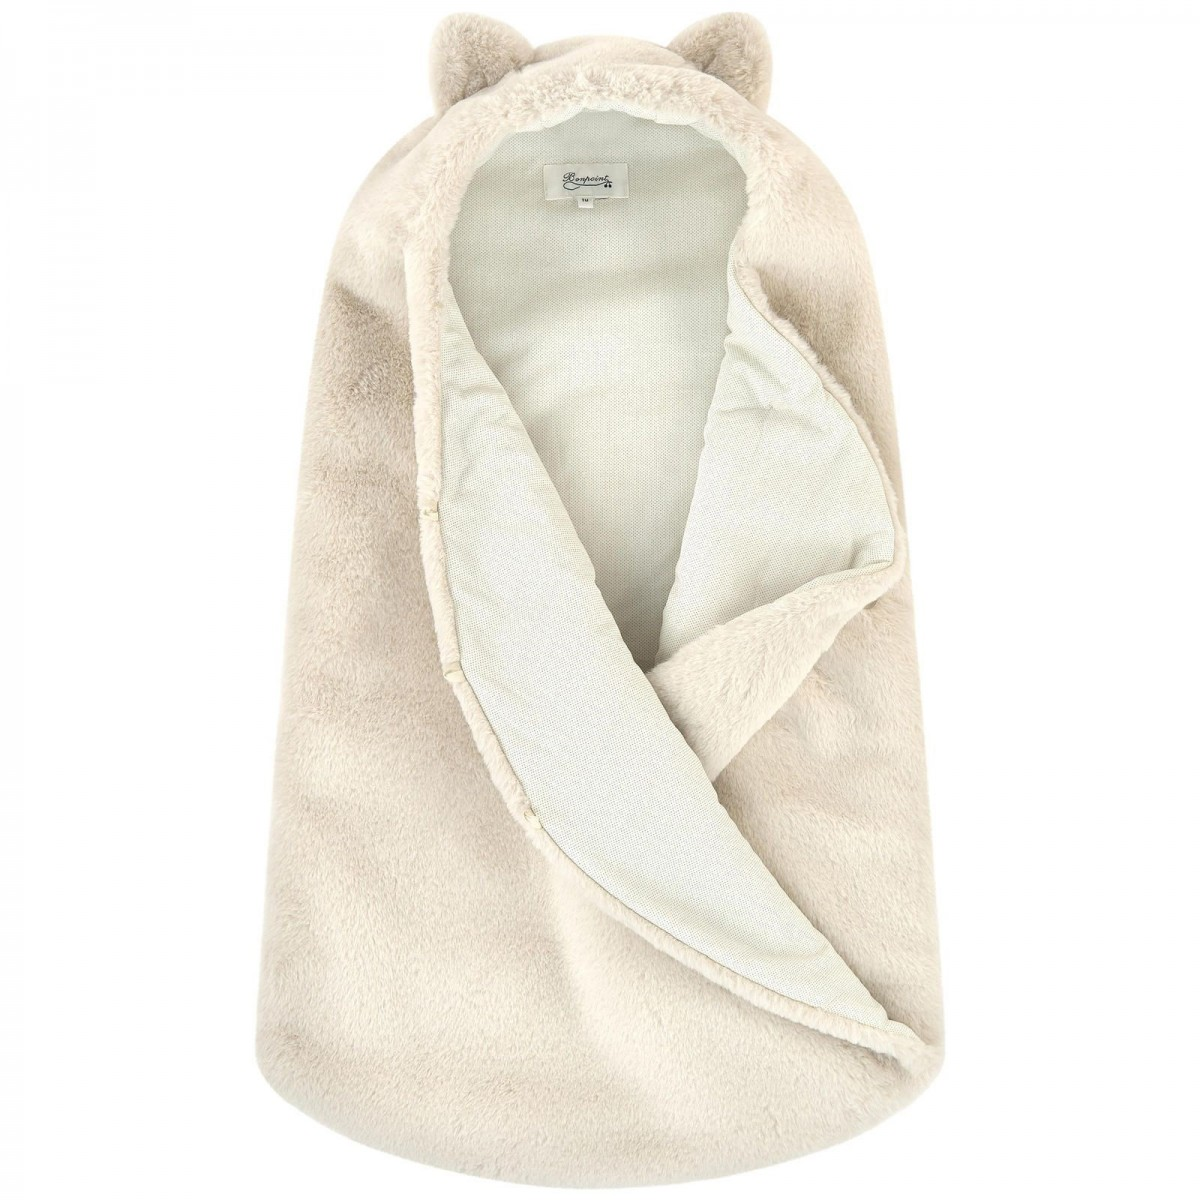 Soft Sleeping Bag in Pale Pink